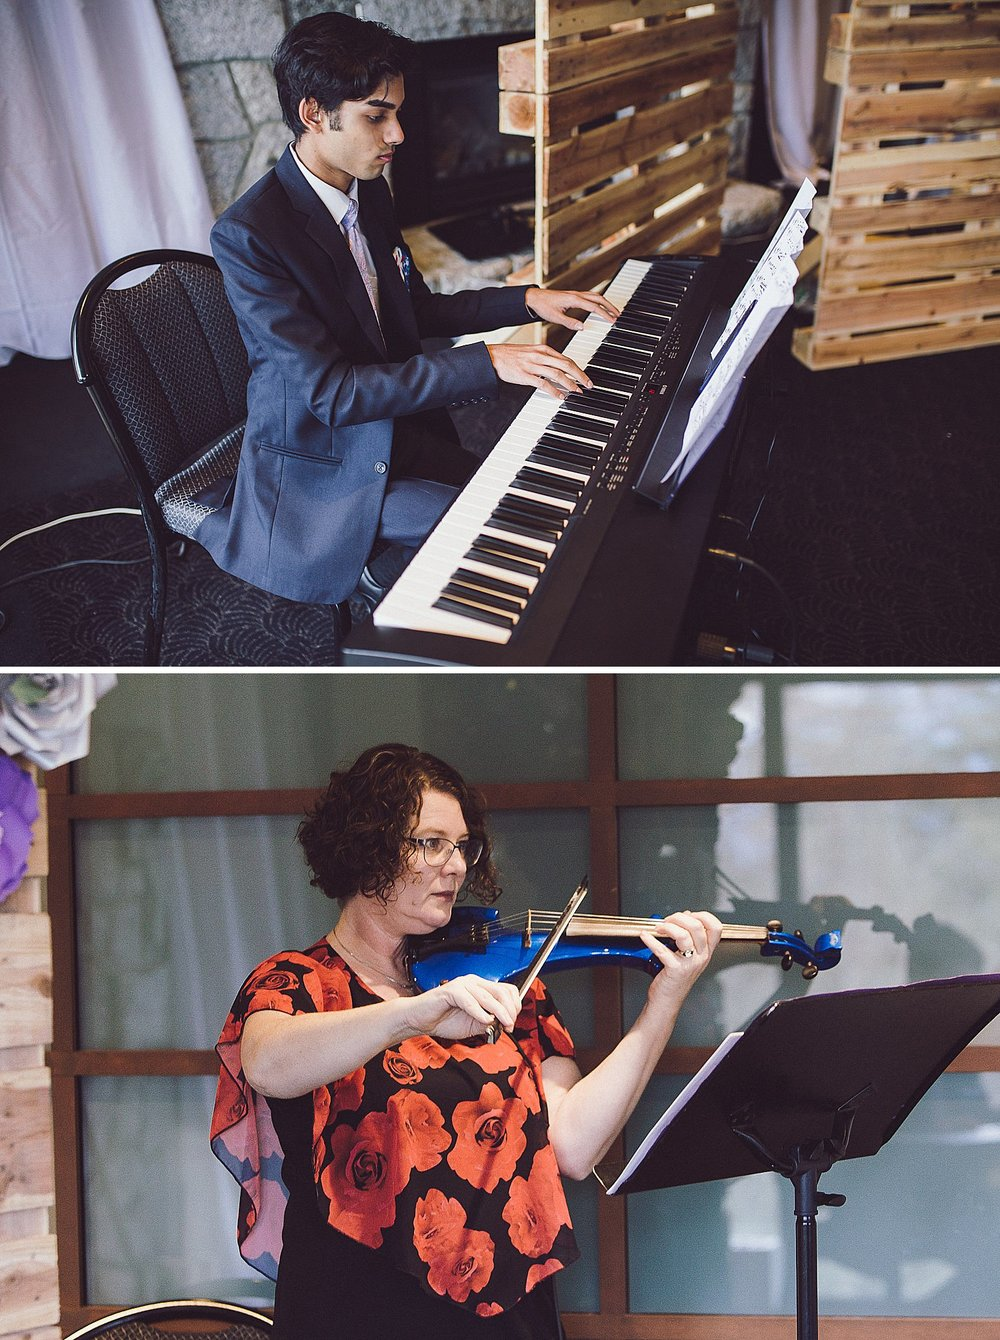 Live music, piano and violin at the wedding ceremony